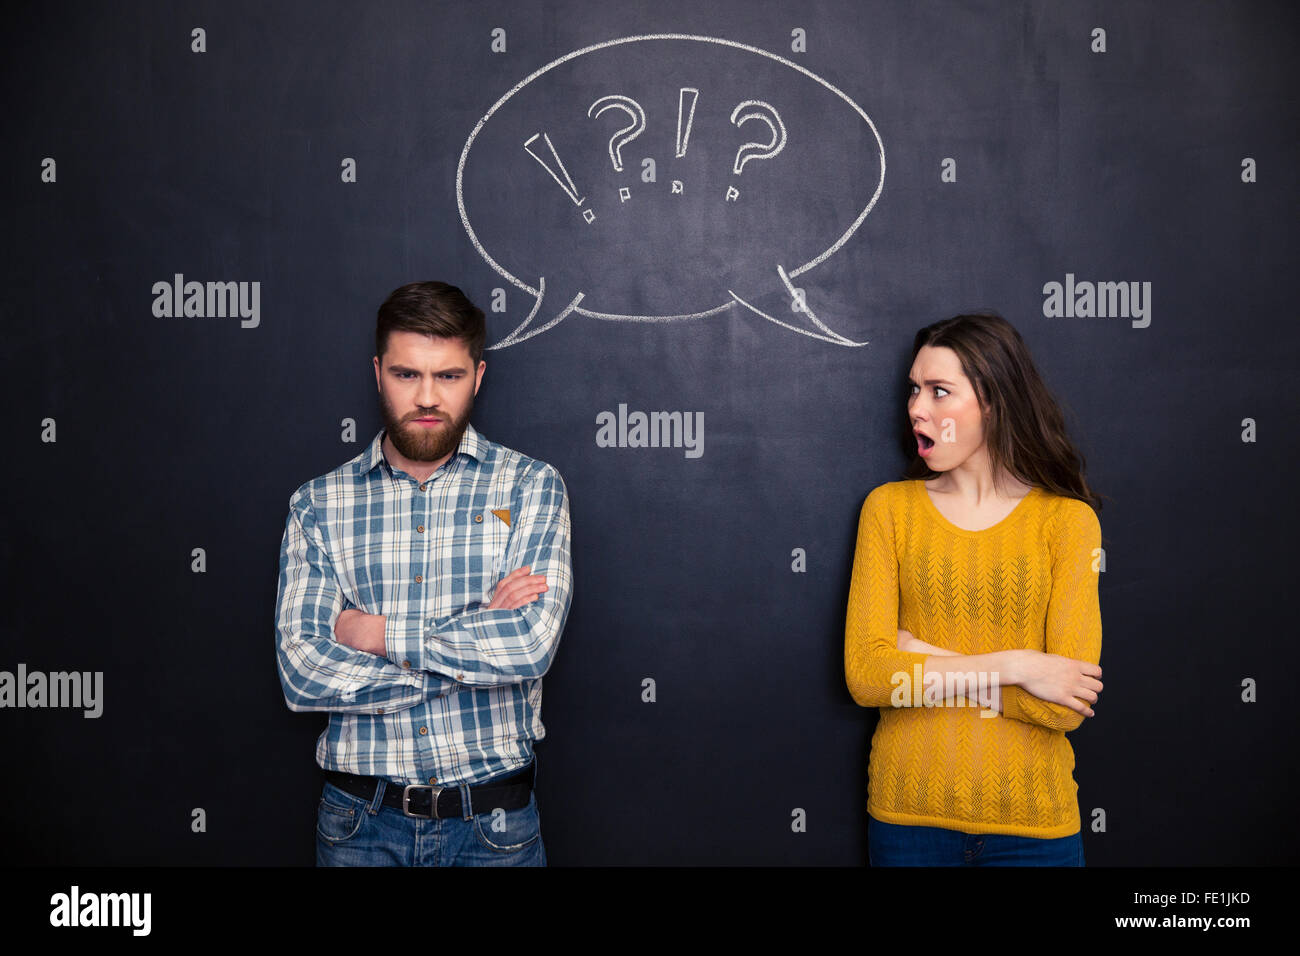 Frowning offended young couple standing with arms crossed after argument over chalkboard background - Stock Image